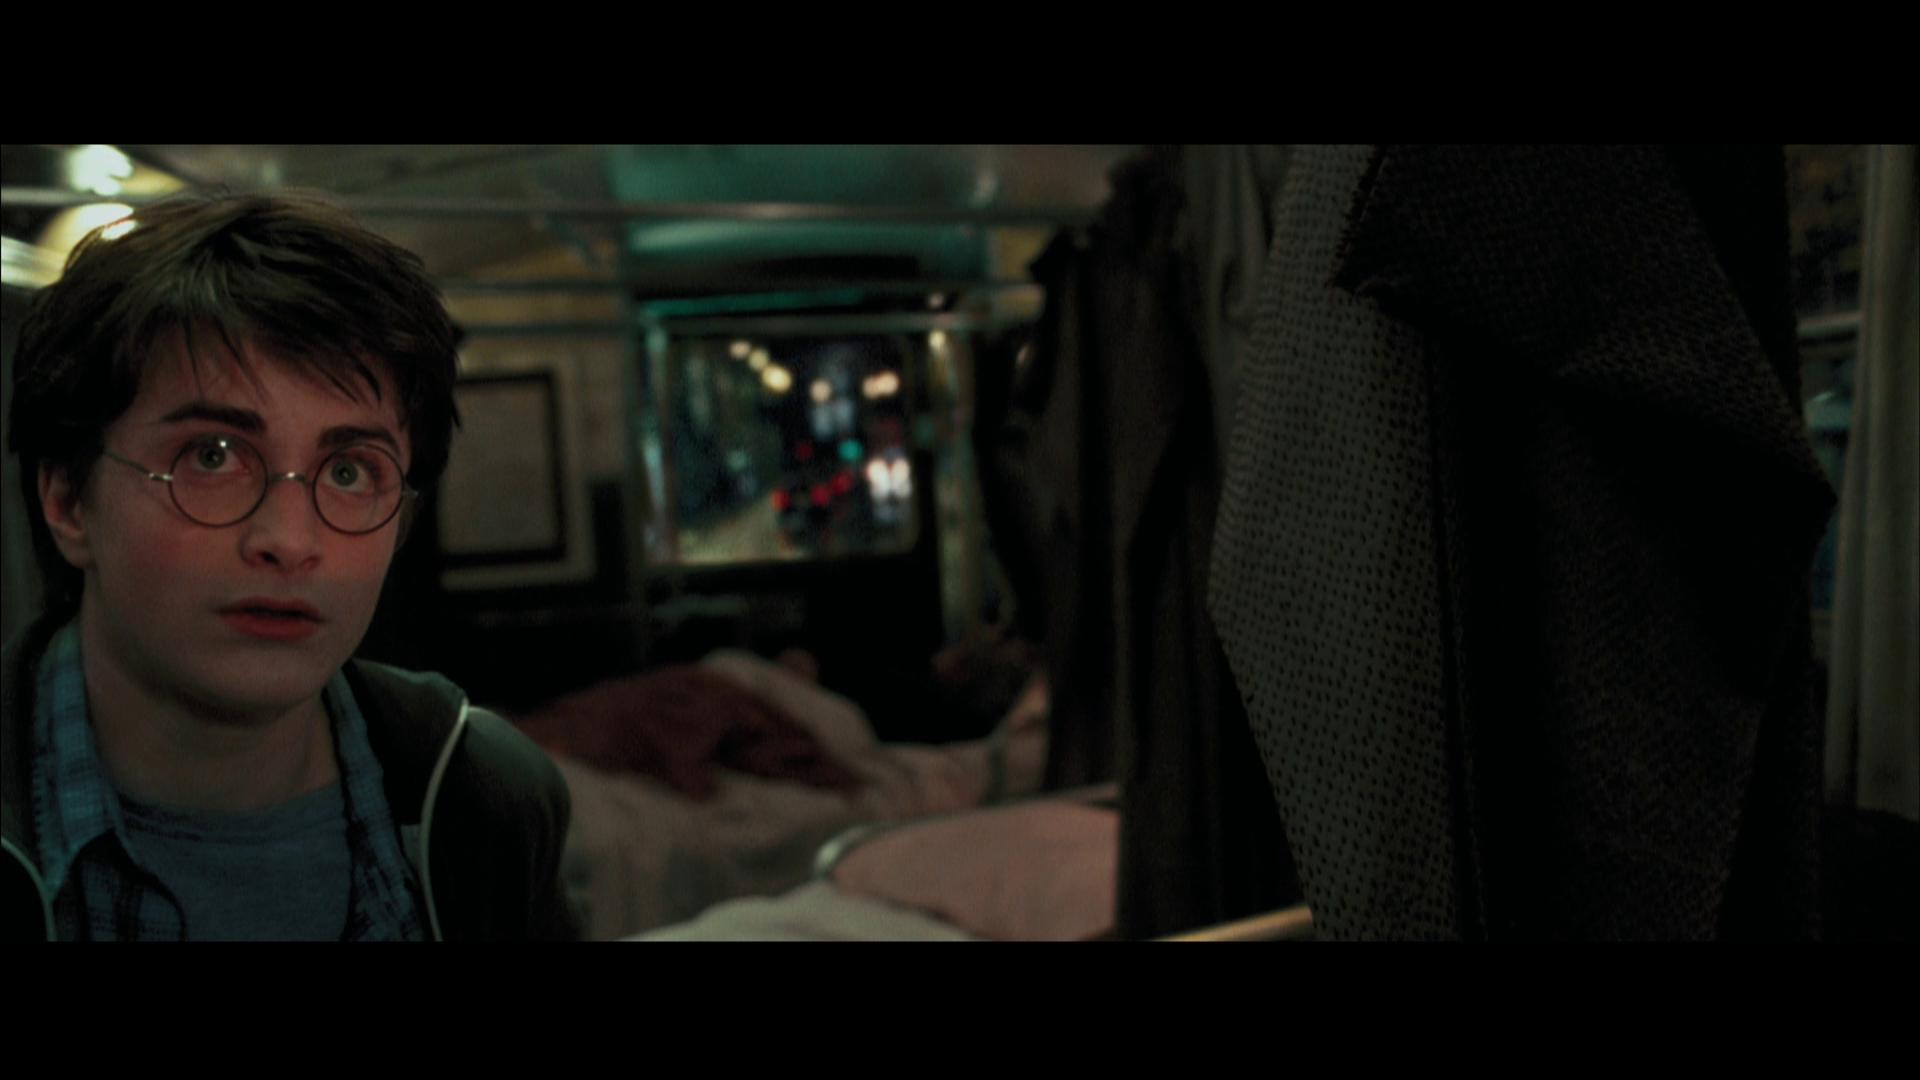 Harry Potter: 8-Film Collection - 4K UHD Review - Page 4 of